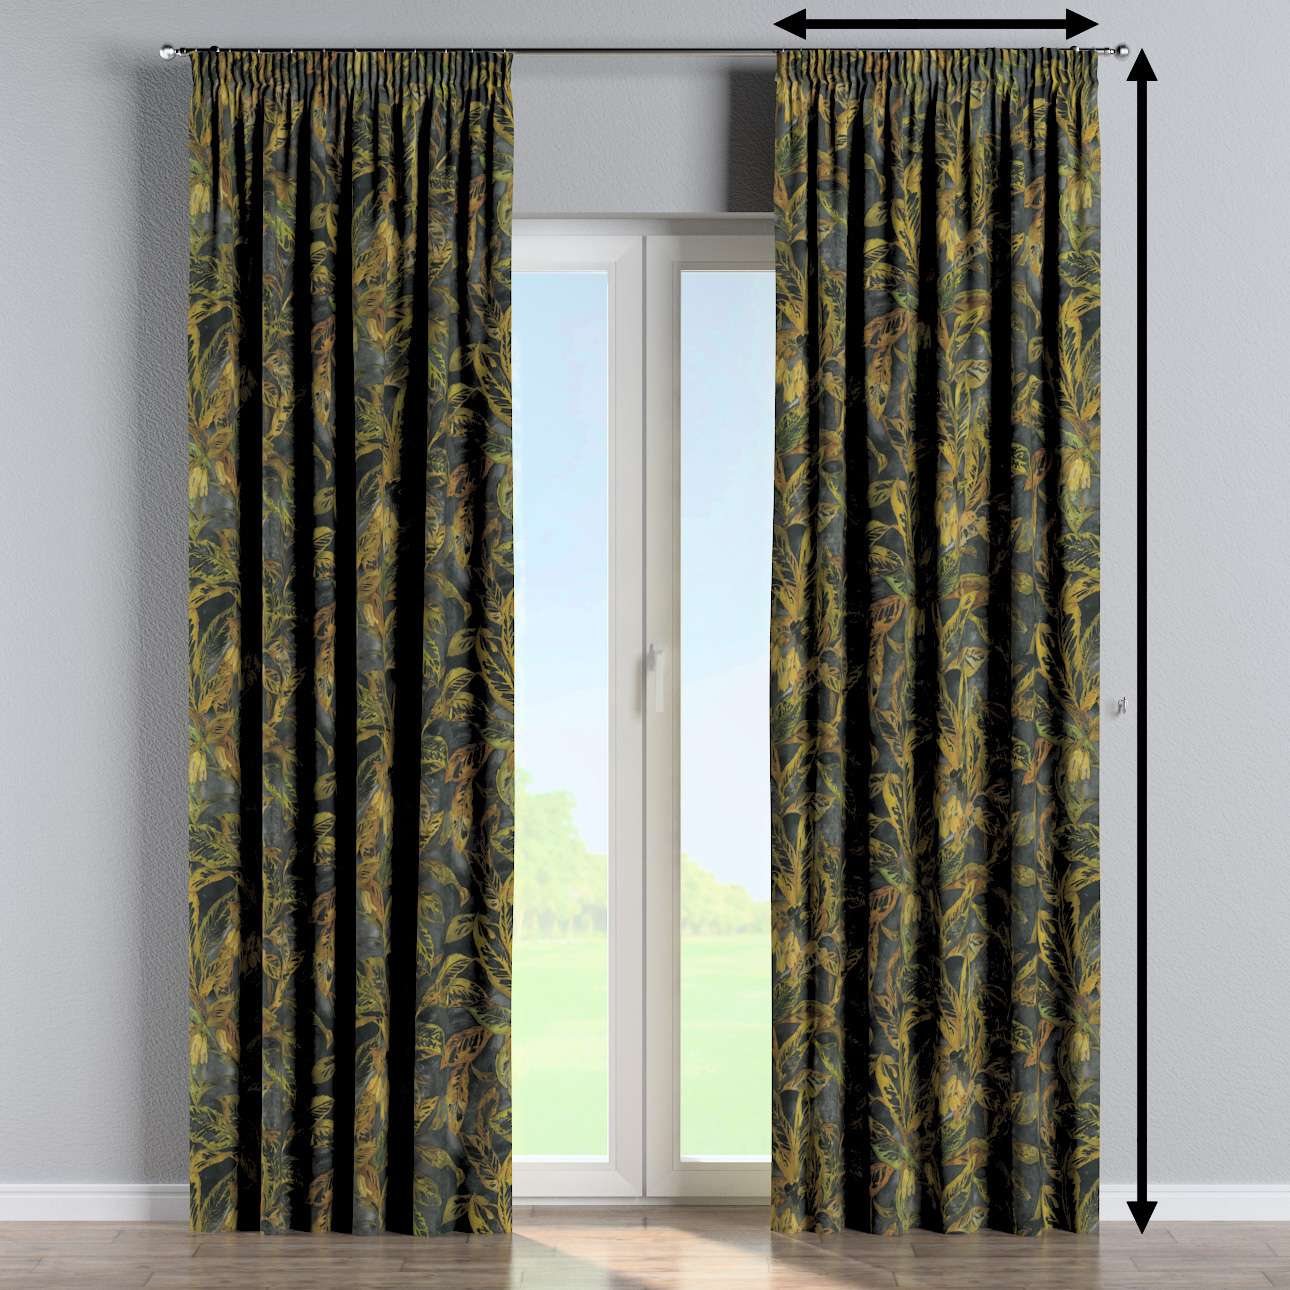 Pencil pleat curtains in collection Abigail, fabric: 143-01